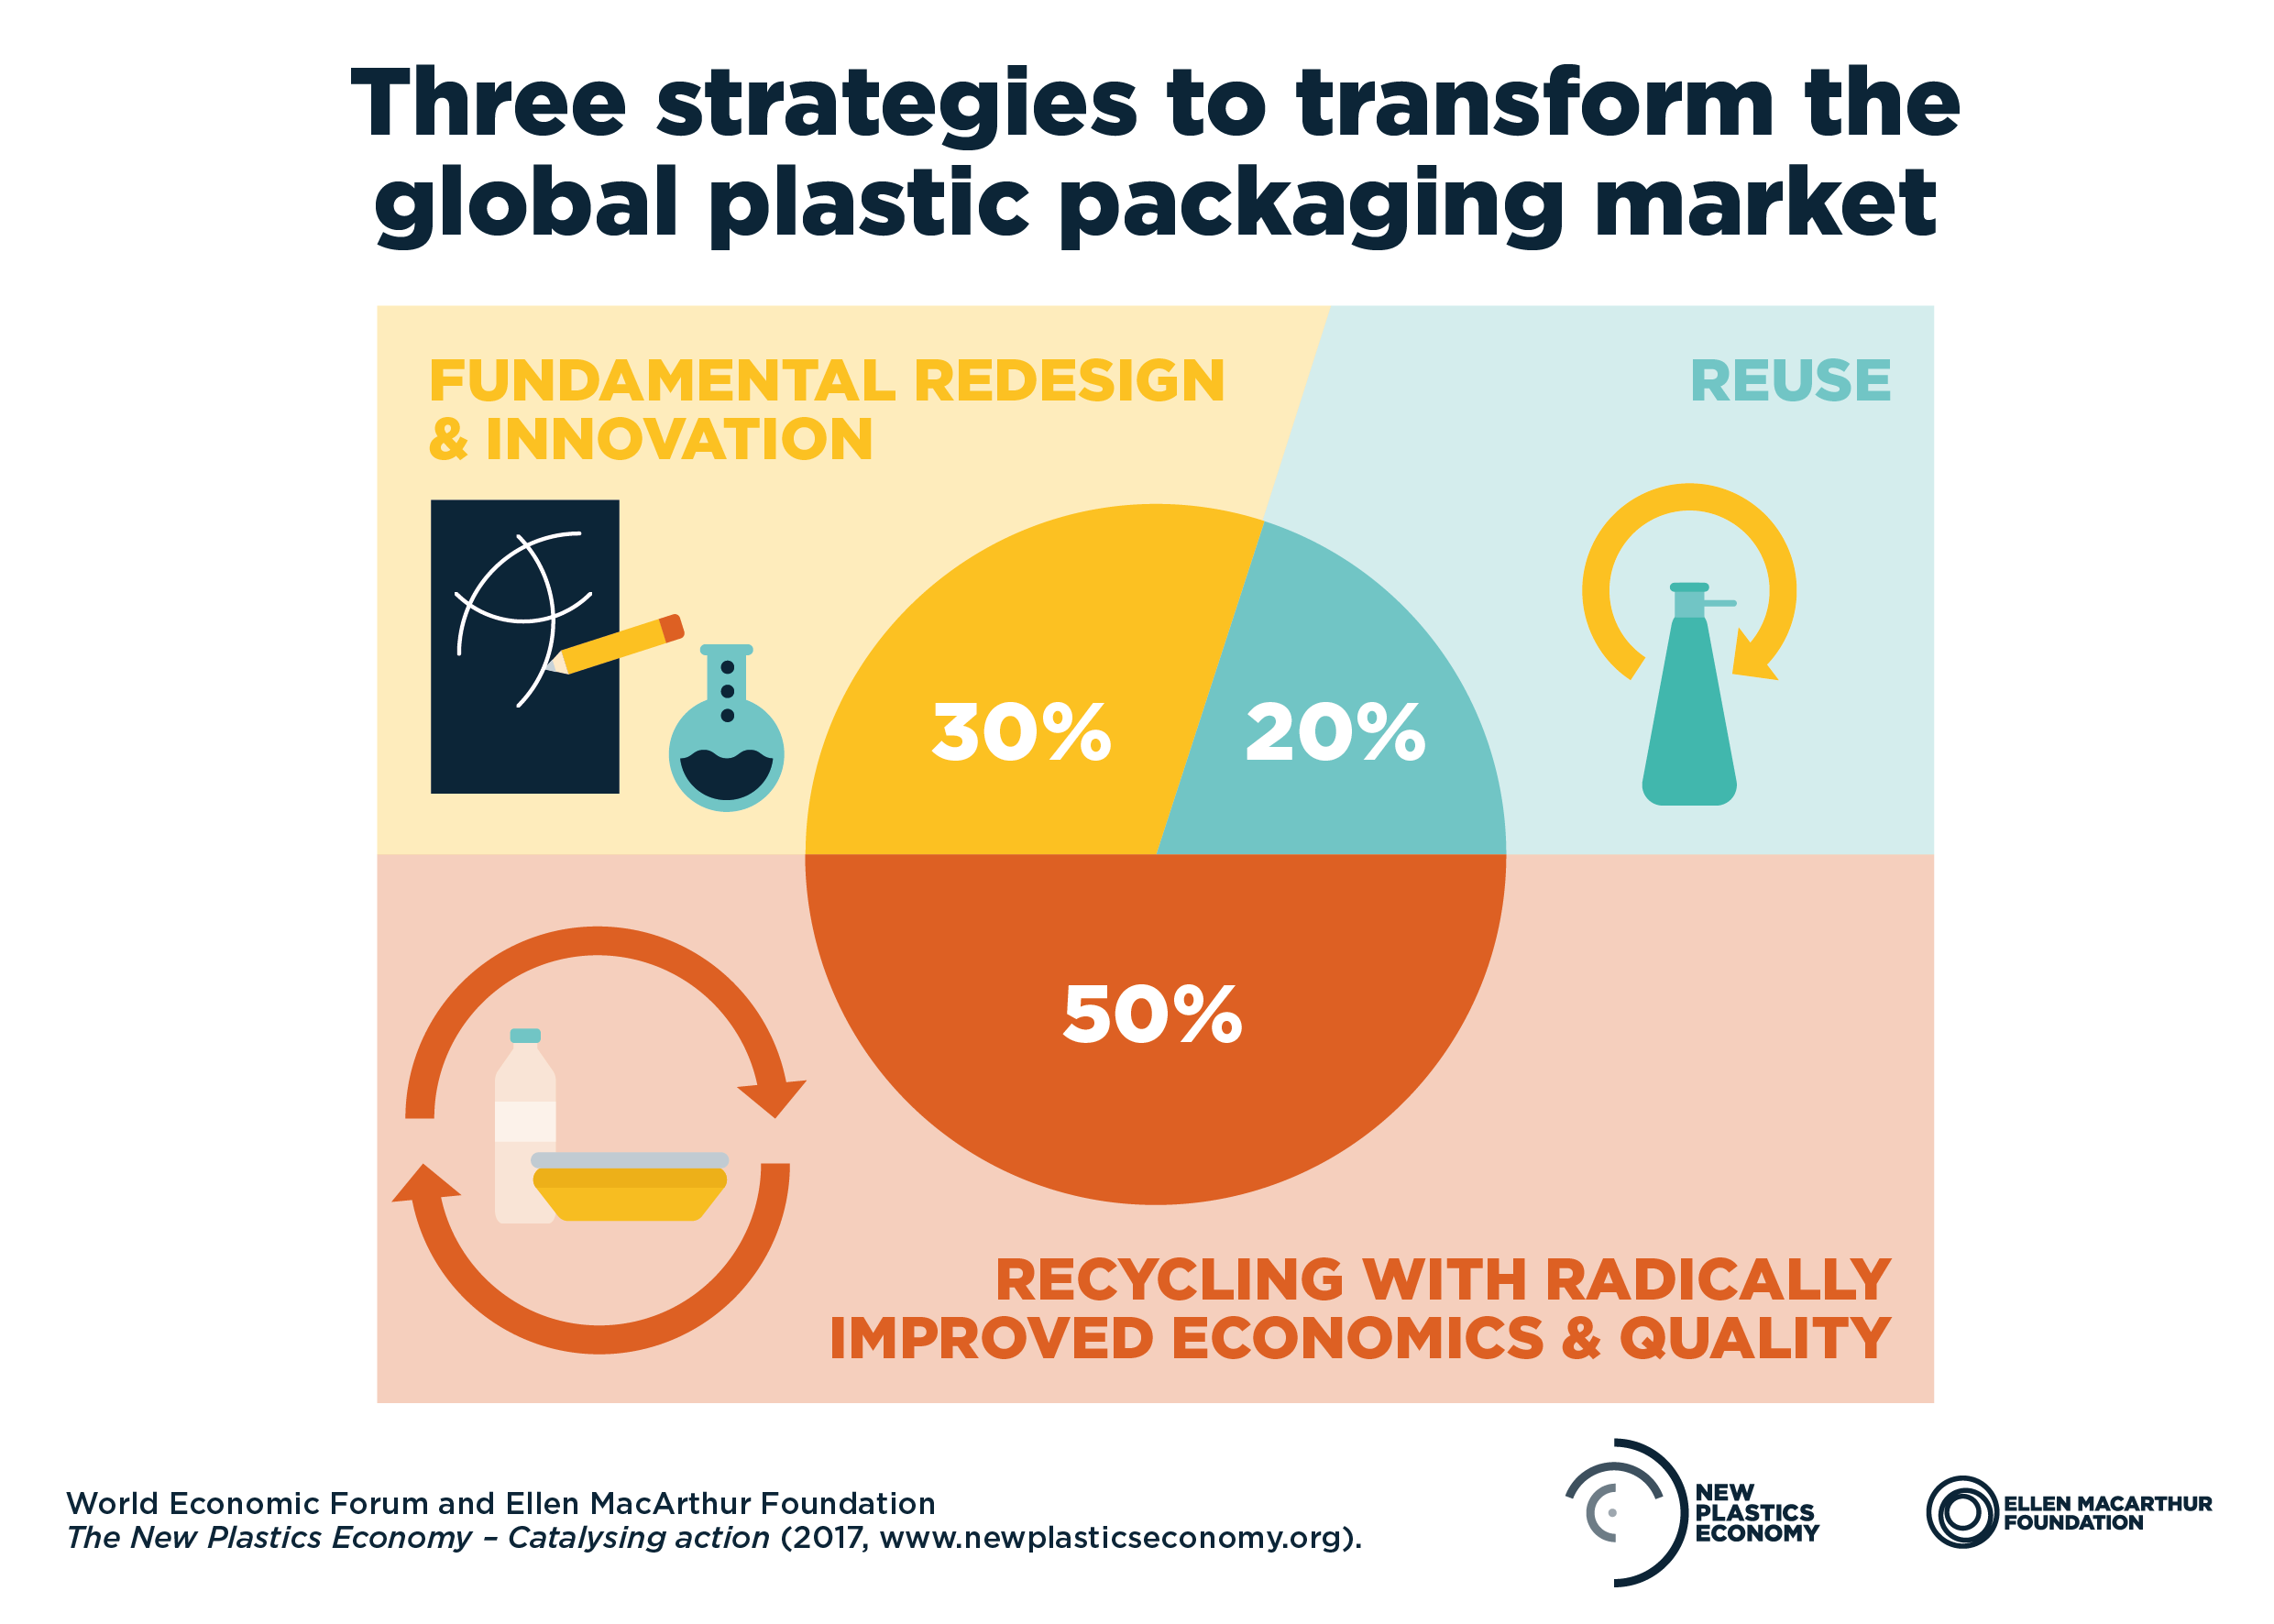 Three strategies to transform global plastic packaging market